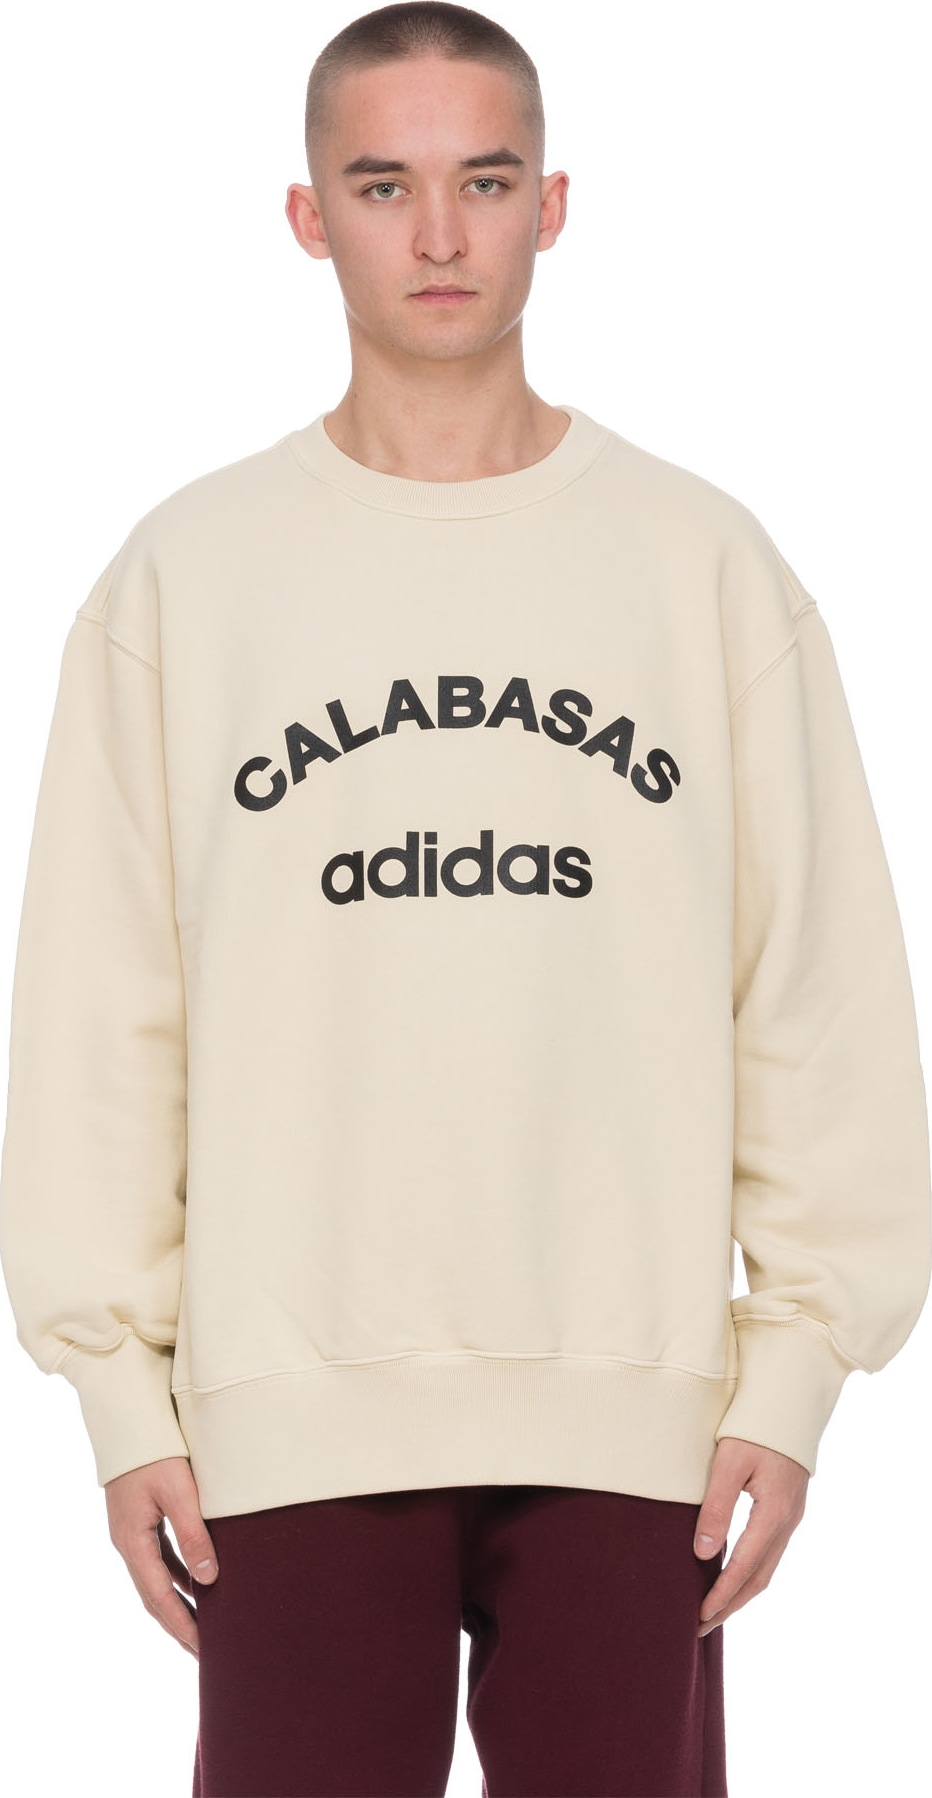 adidas yezzy pullover